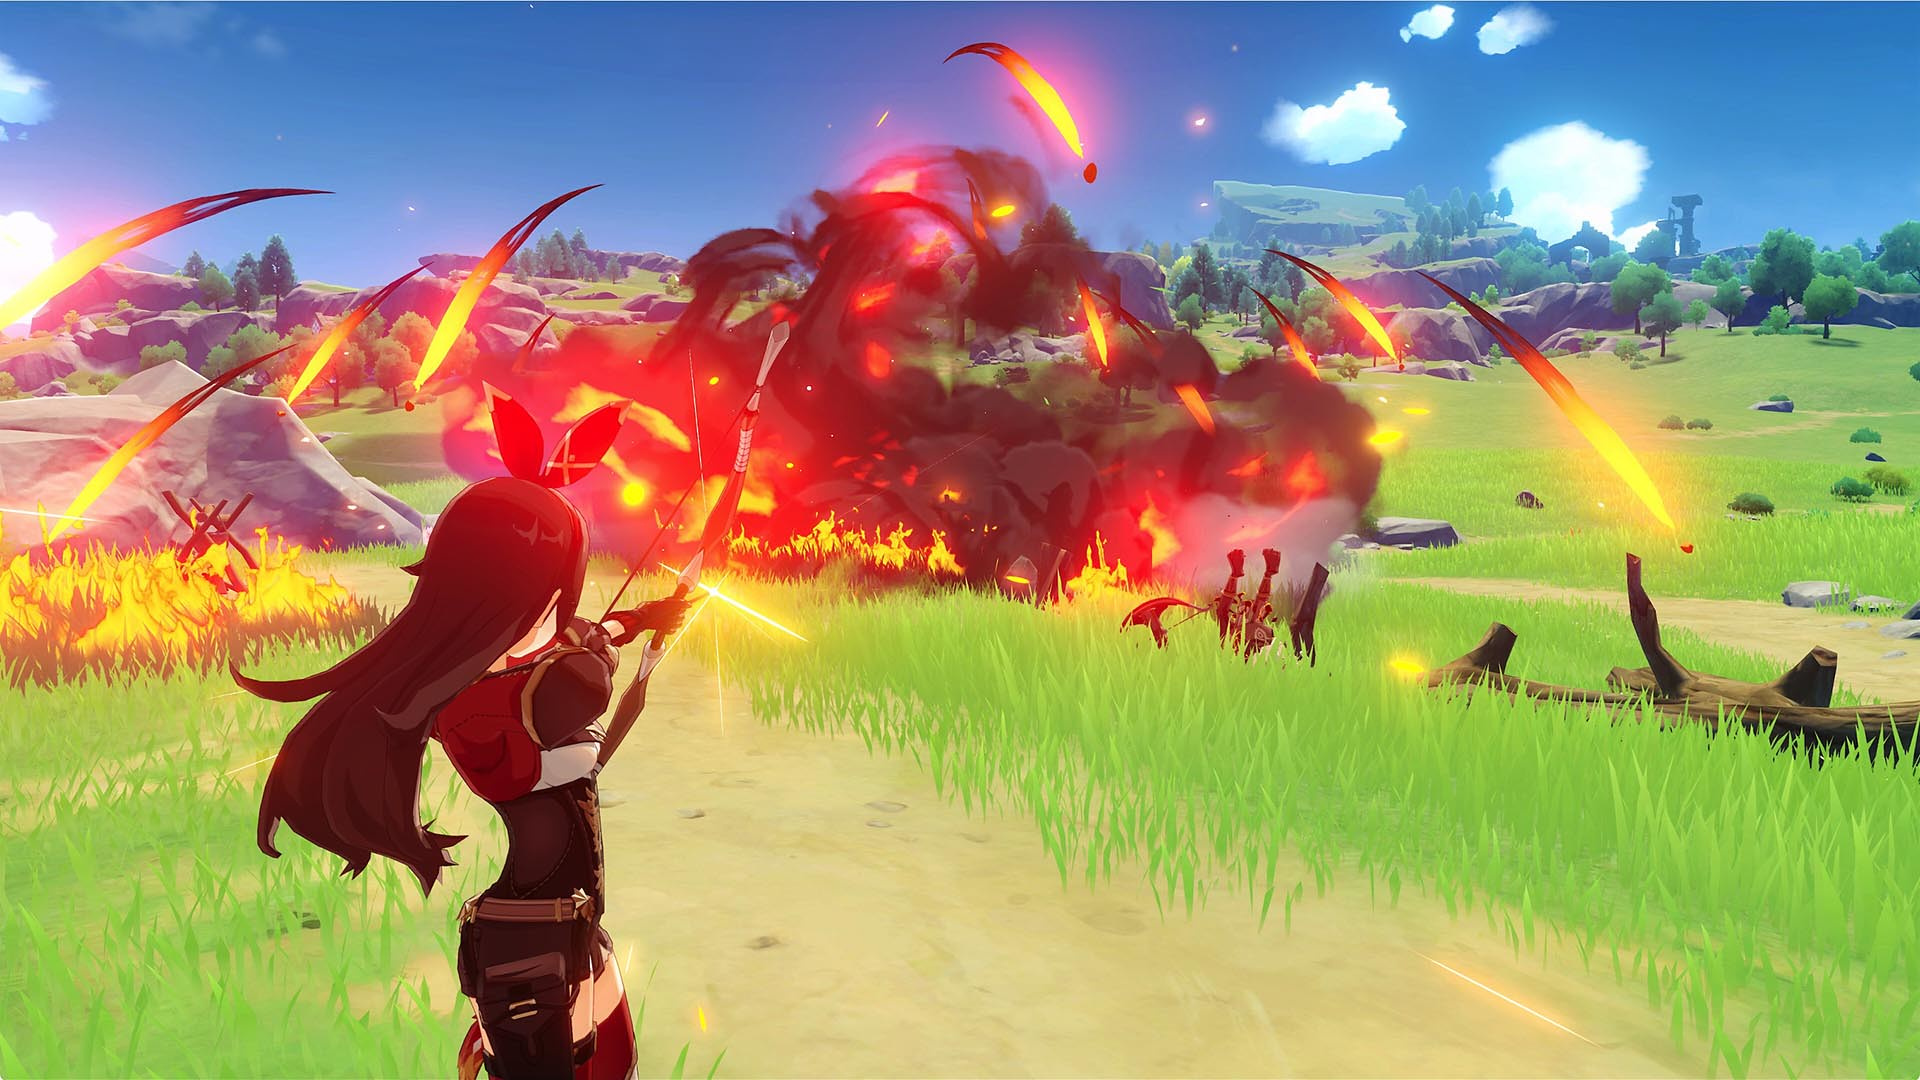 Open World Action Rpg Genshin Impact Gets Closed Beta Test On Ps4 Next Month Push Square